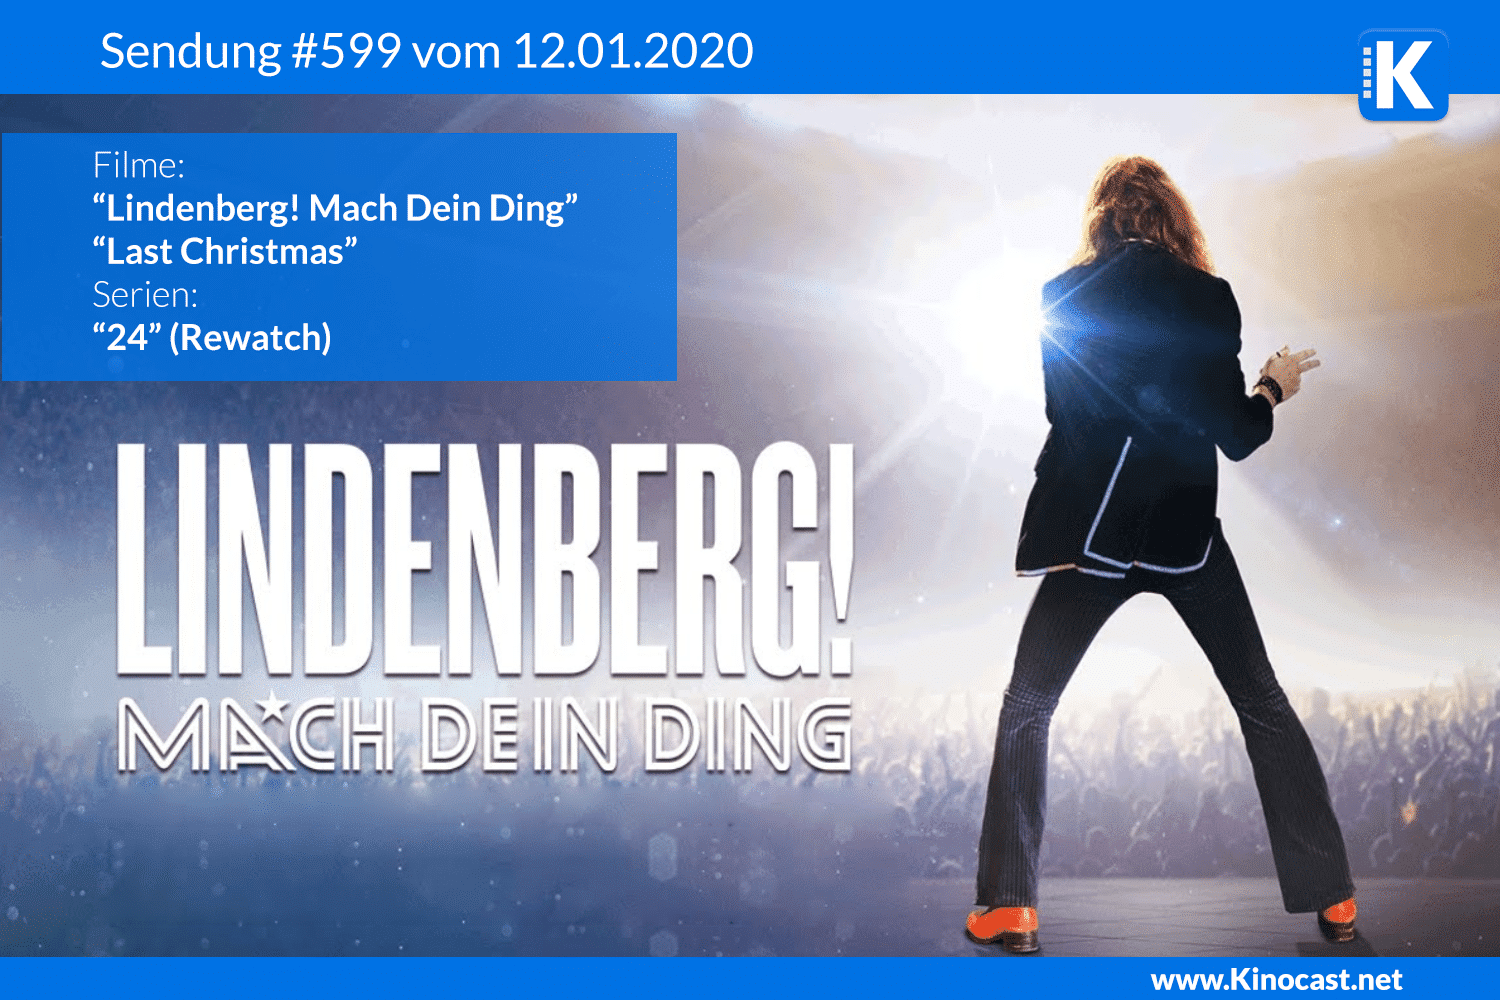 Lindenberg Mach Dein Ding Last Christmas Download film german deutsch